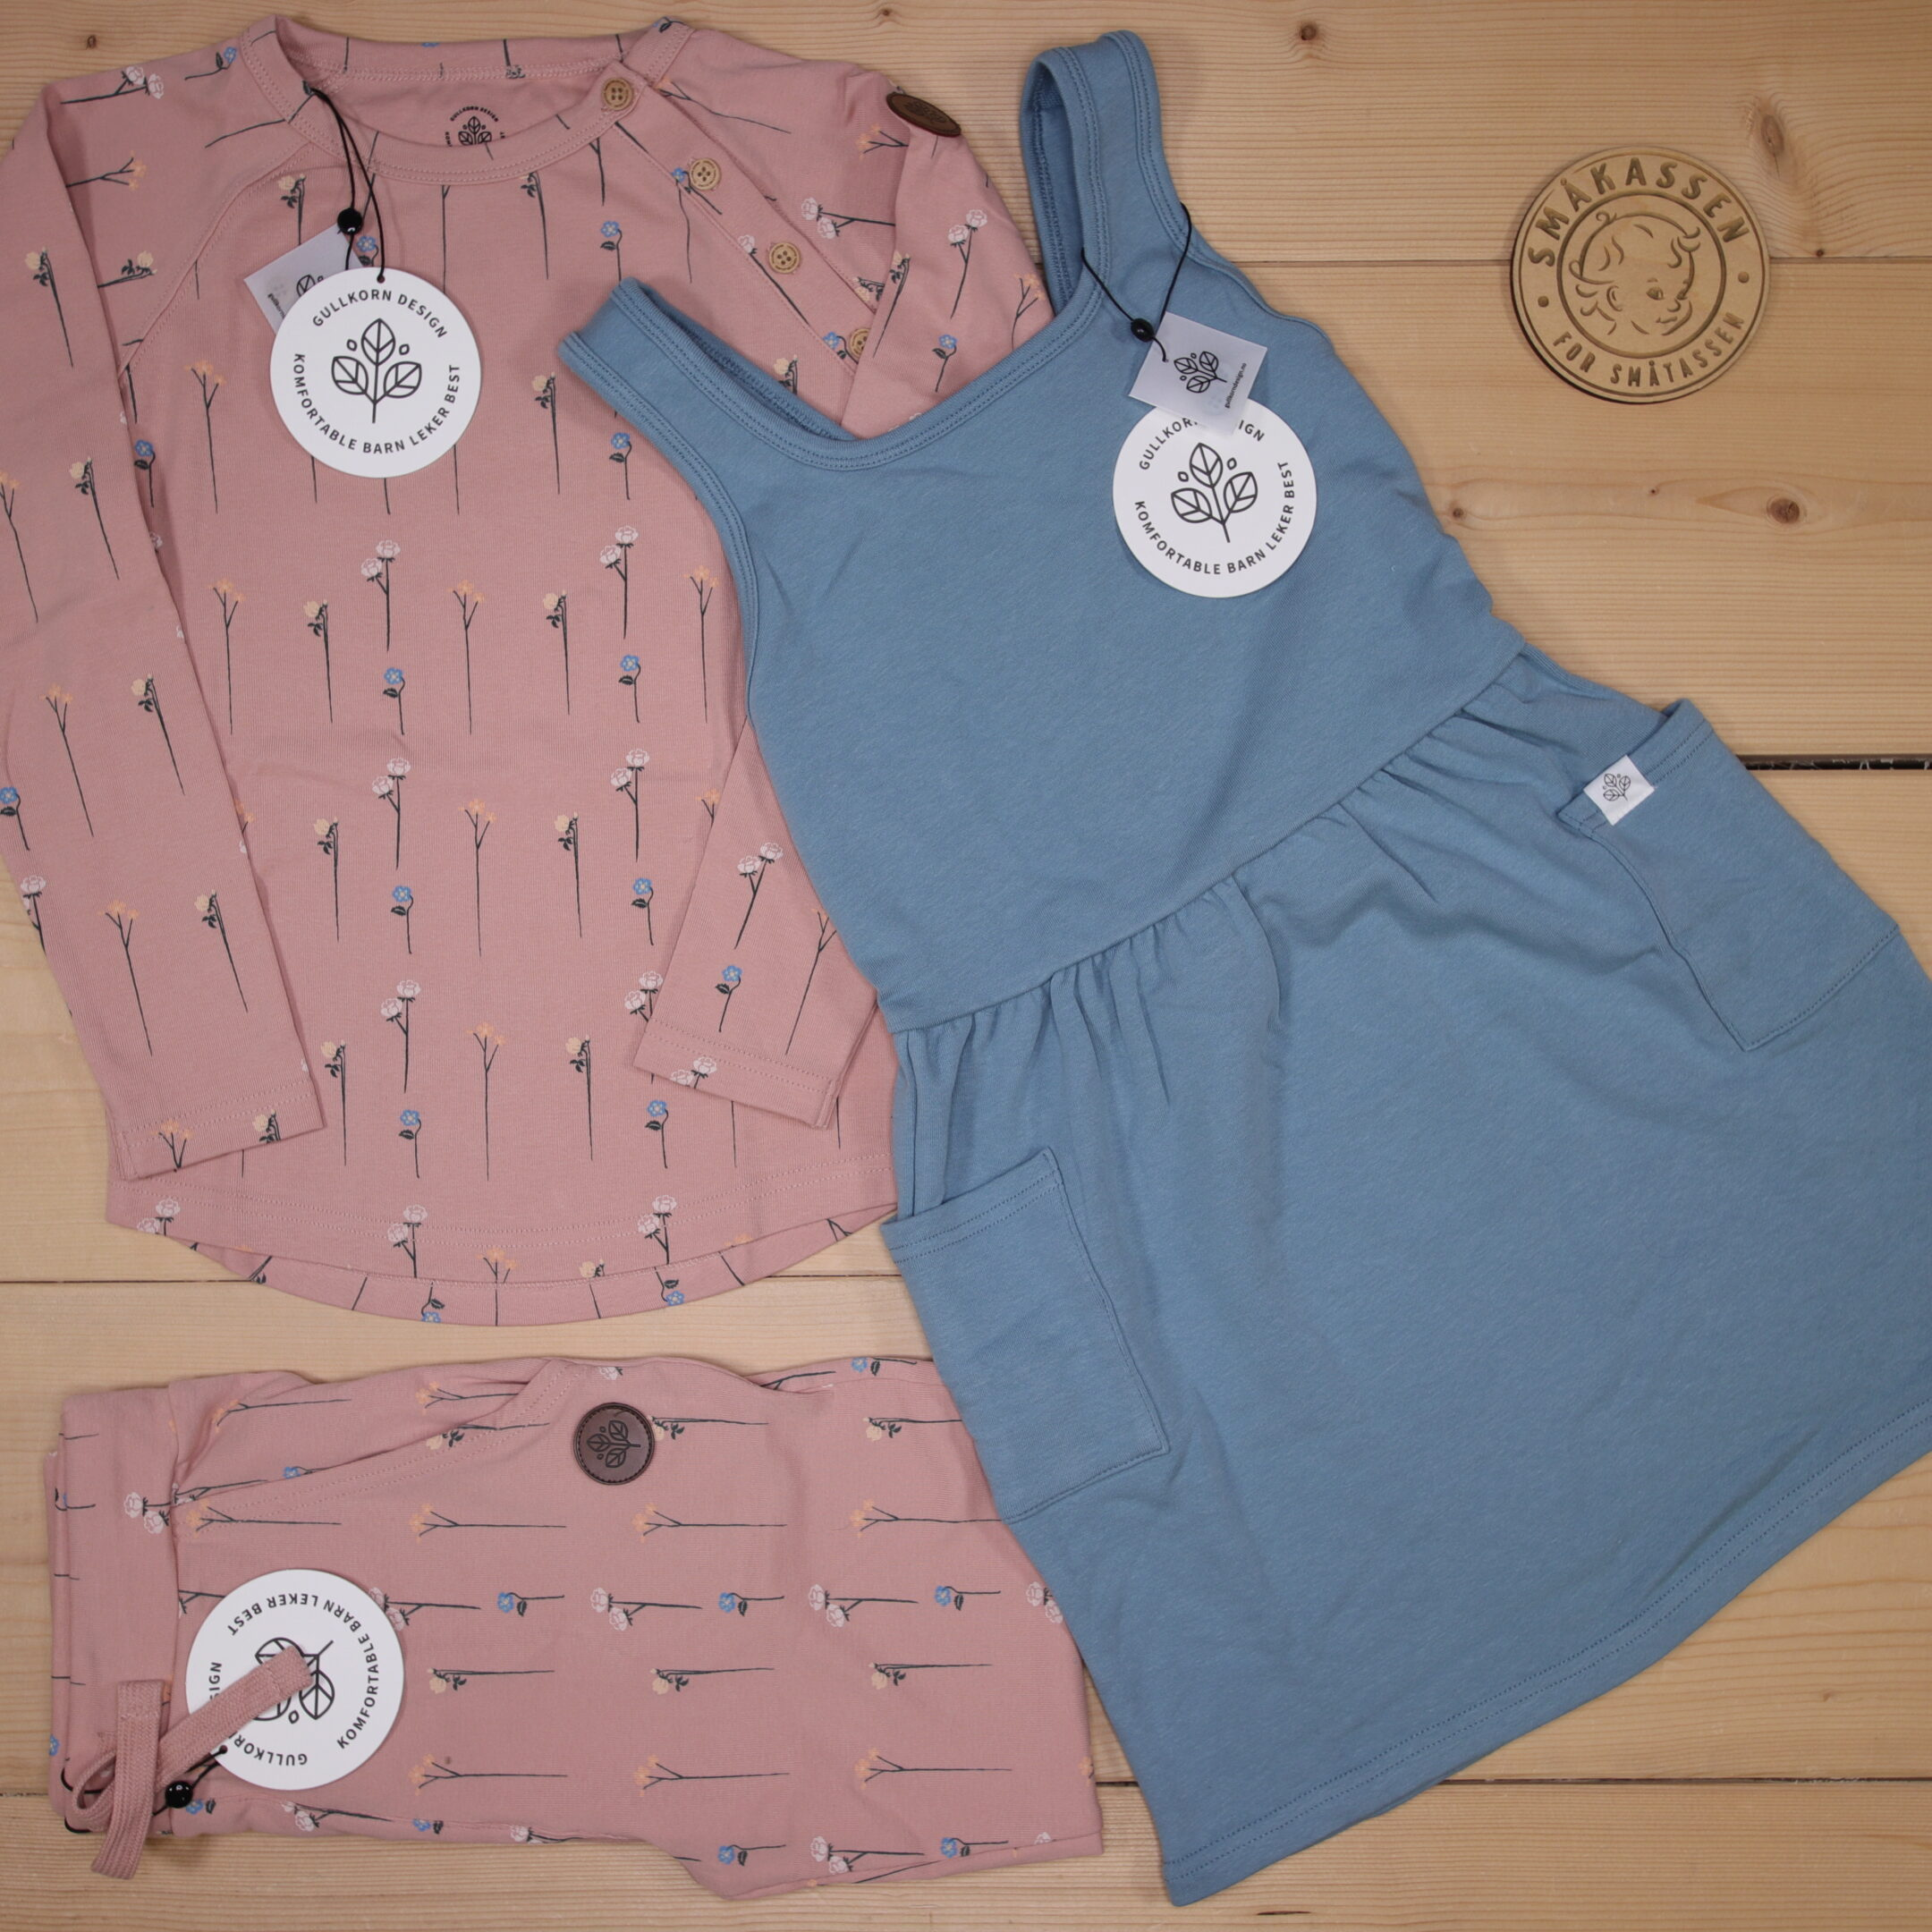 💫Gullkorn news ss21- comfortable outfits in beautiful colors and with fun patterns💫 We love the combination of the blue dress and the Villvette longsleeve in the picture 🤩  Dette er Småpakke som vi forberedte for en jente i stilen cool